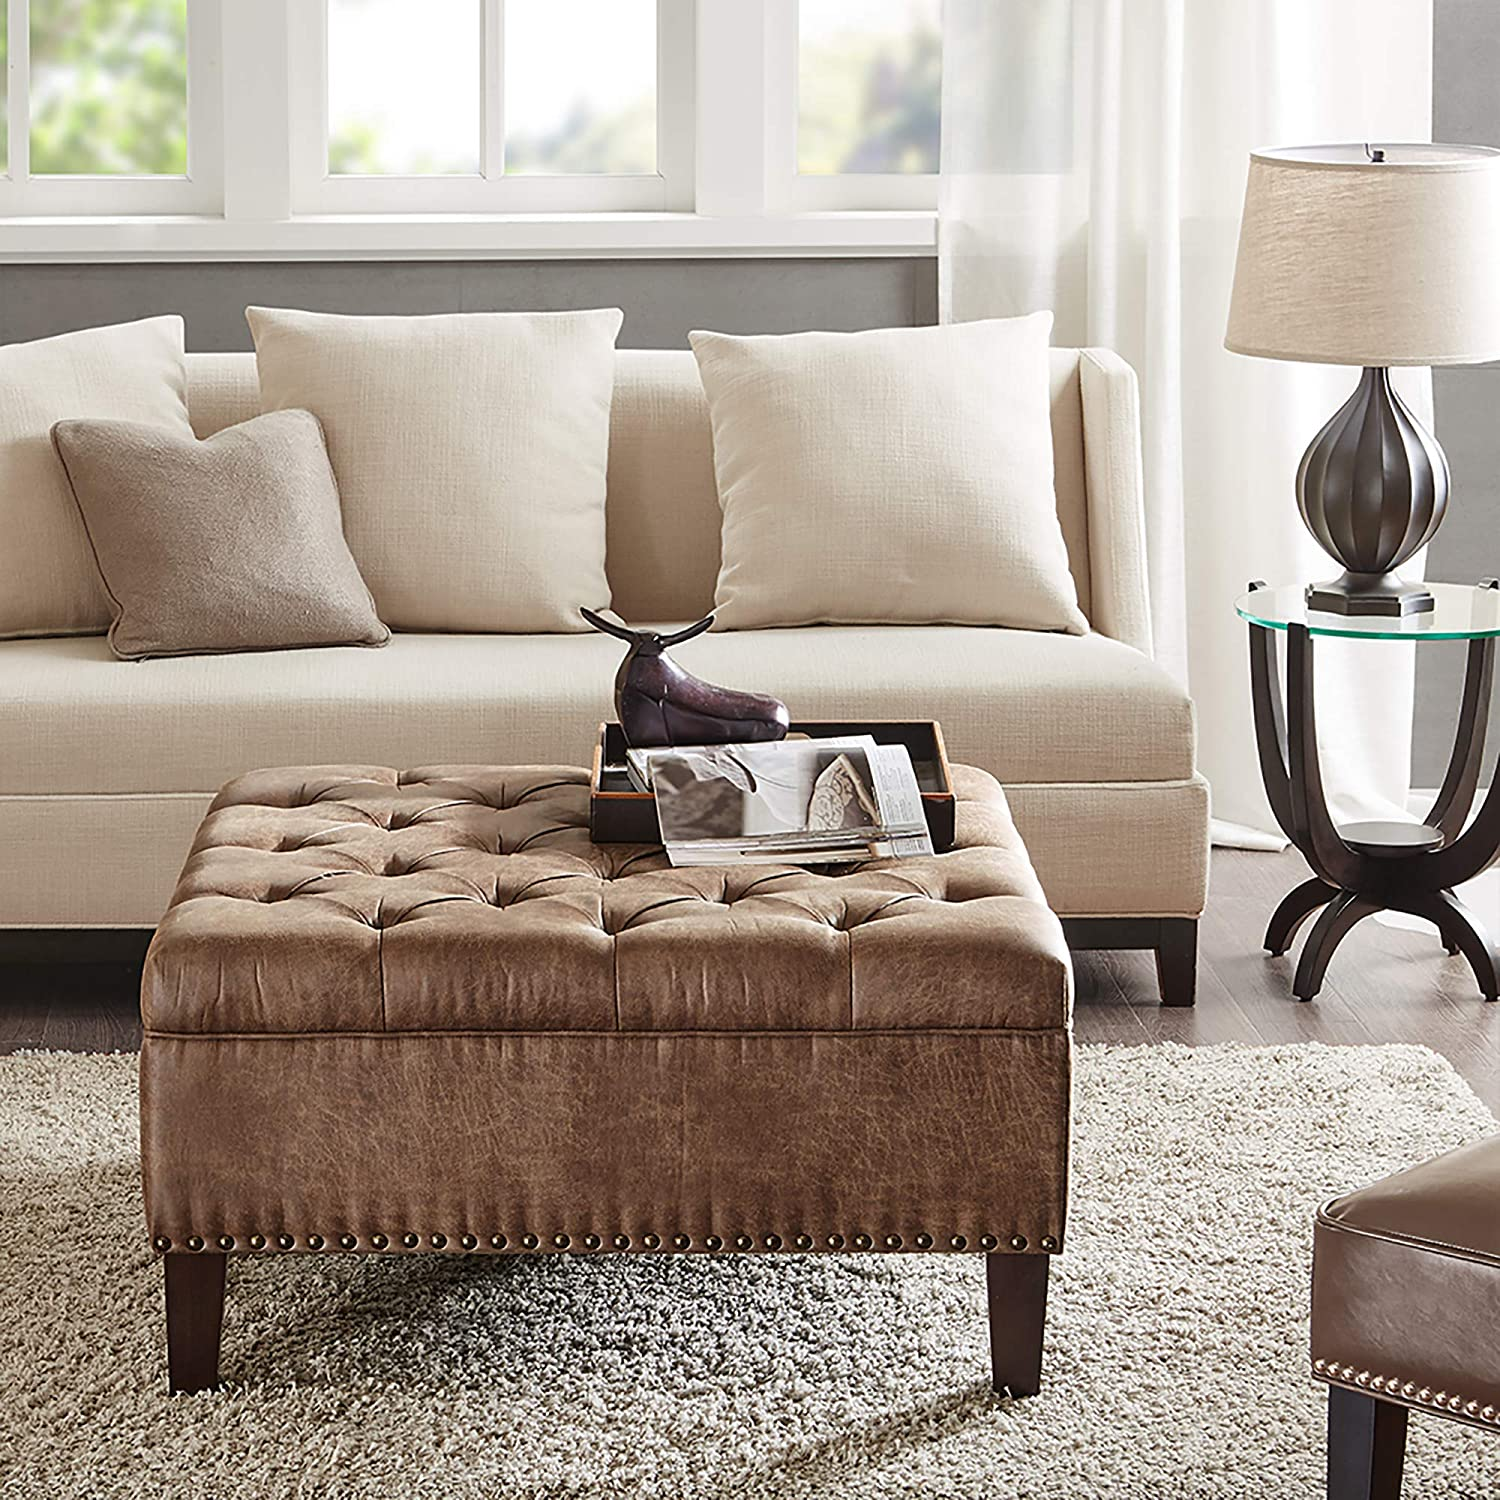 Madison Park Square Tufted Large Faux Leather All Foam Wood Frame Brown Cocktail Ottoman Modern Design Coffee Table For Living Room Furniture Decor